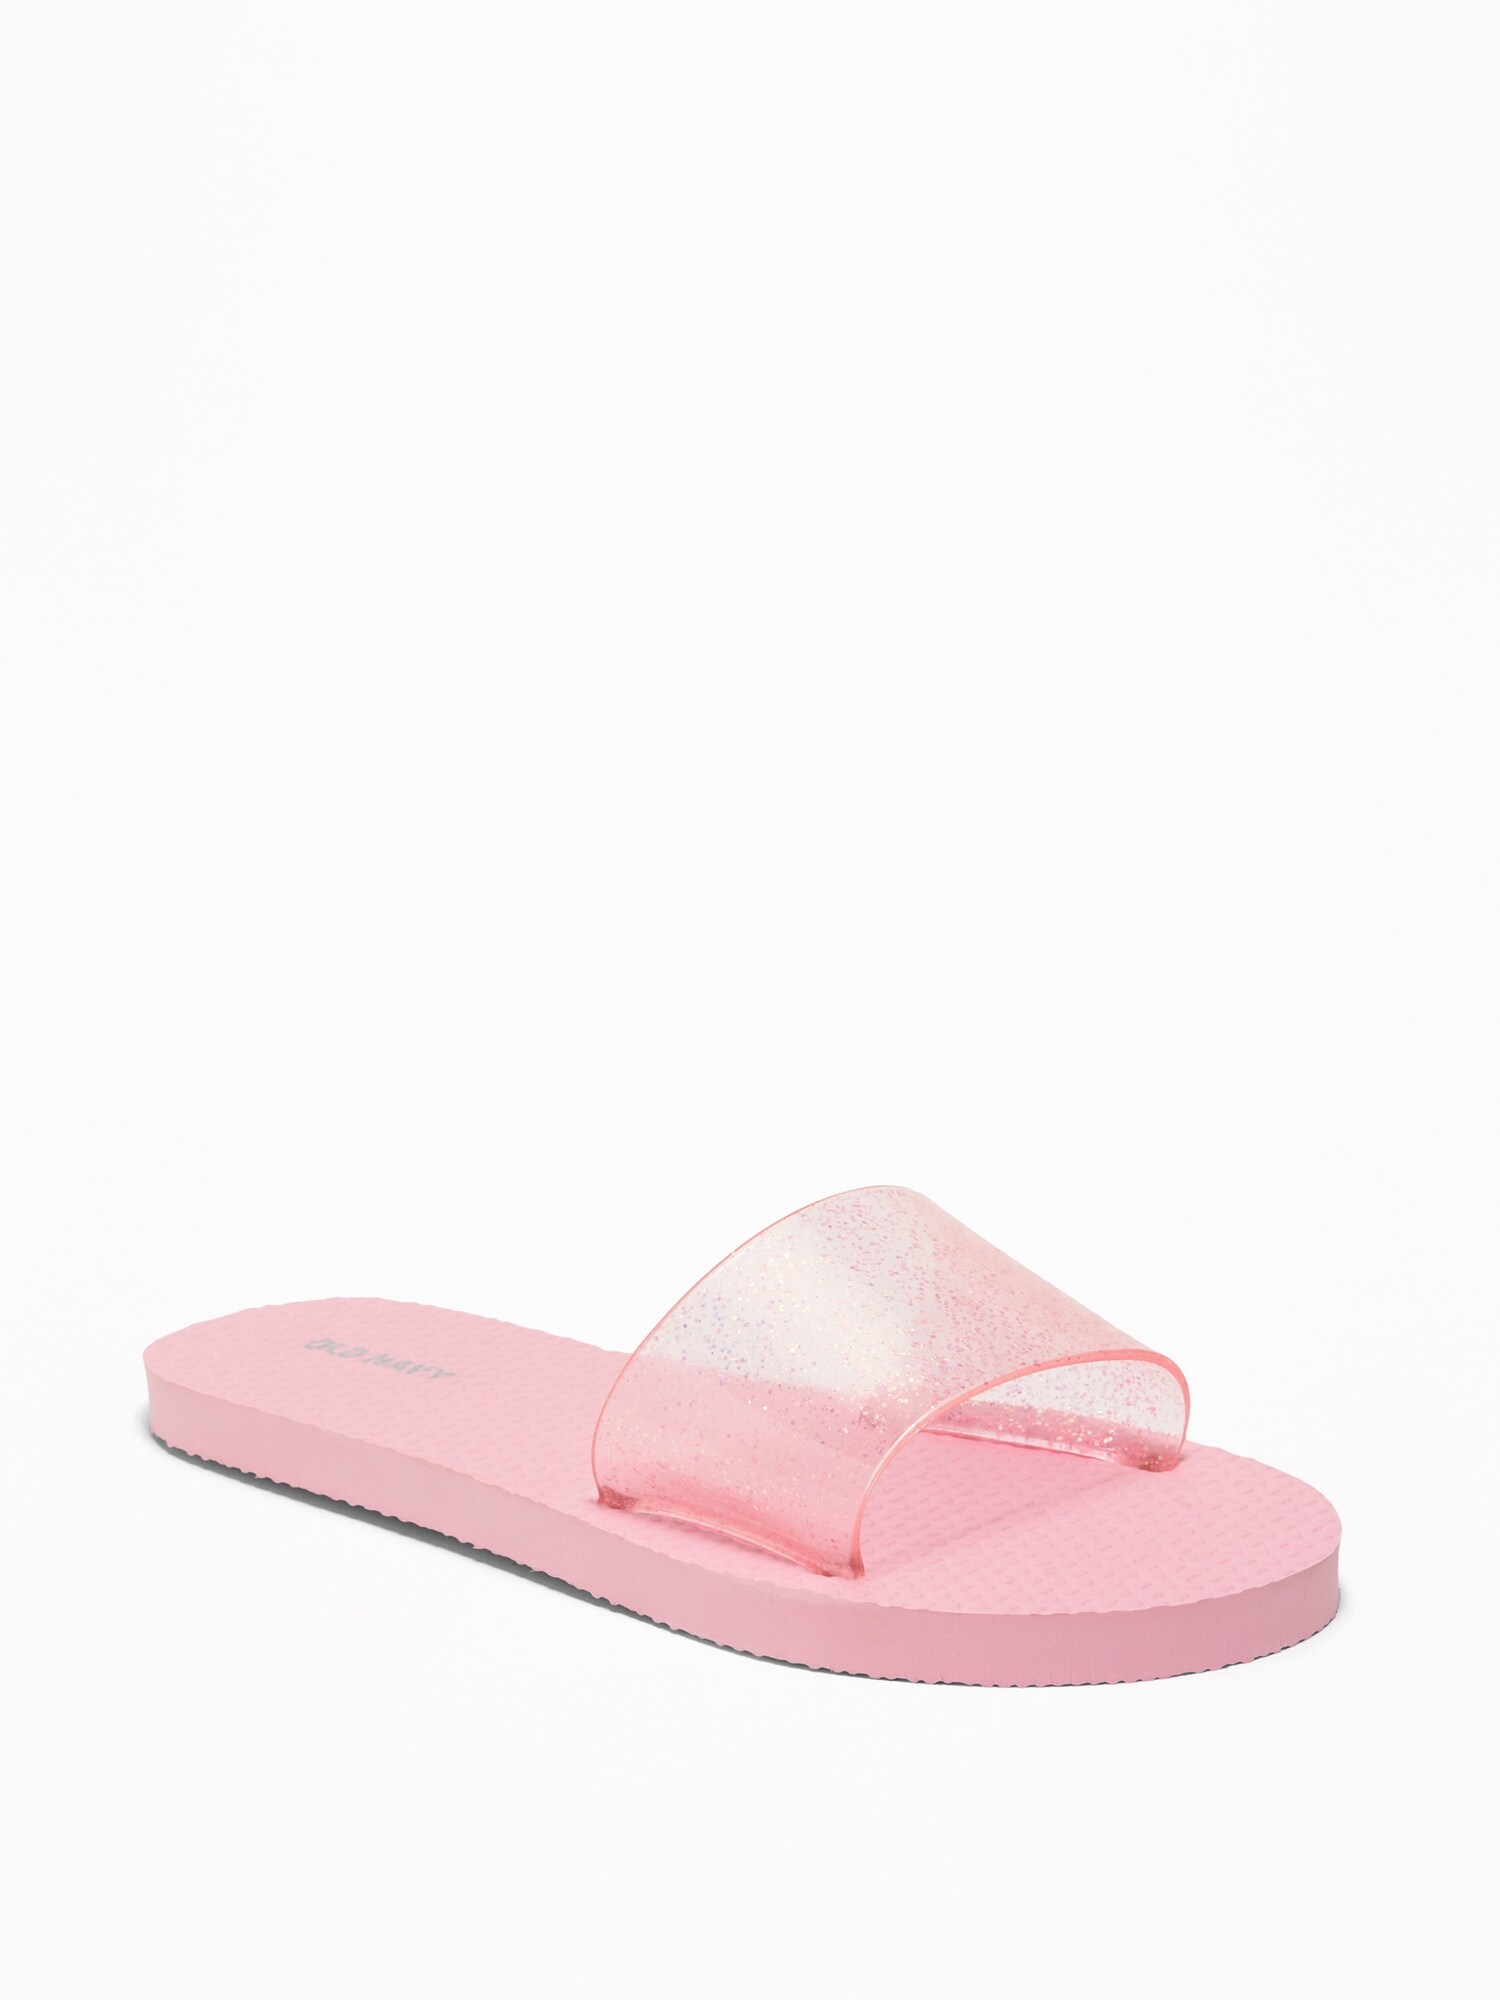 8062456125 Jelly Slide Flip-Flops for Girls | Old Navy